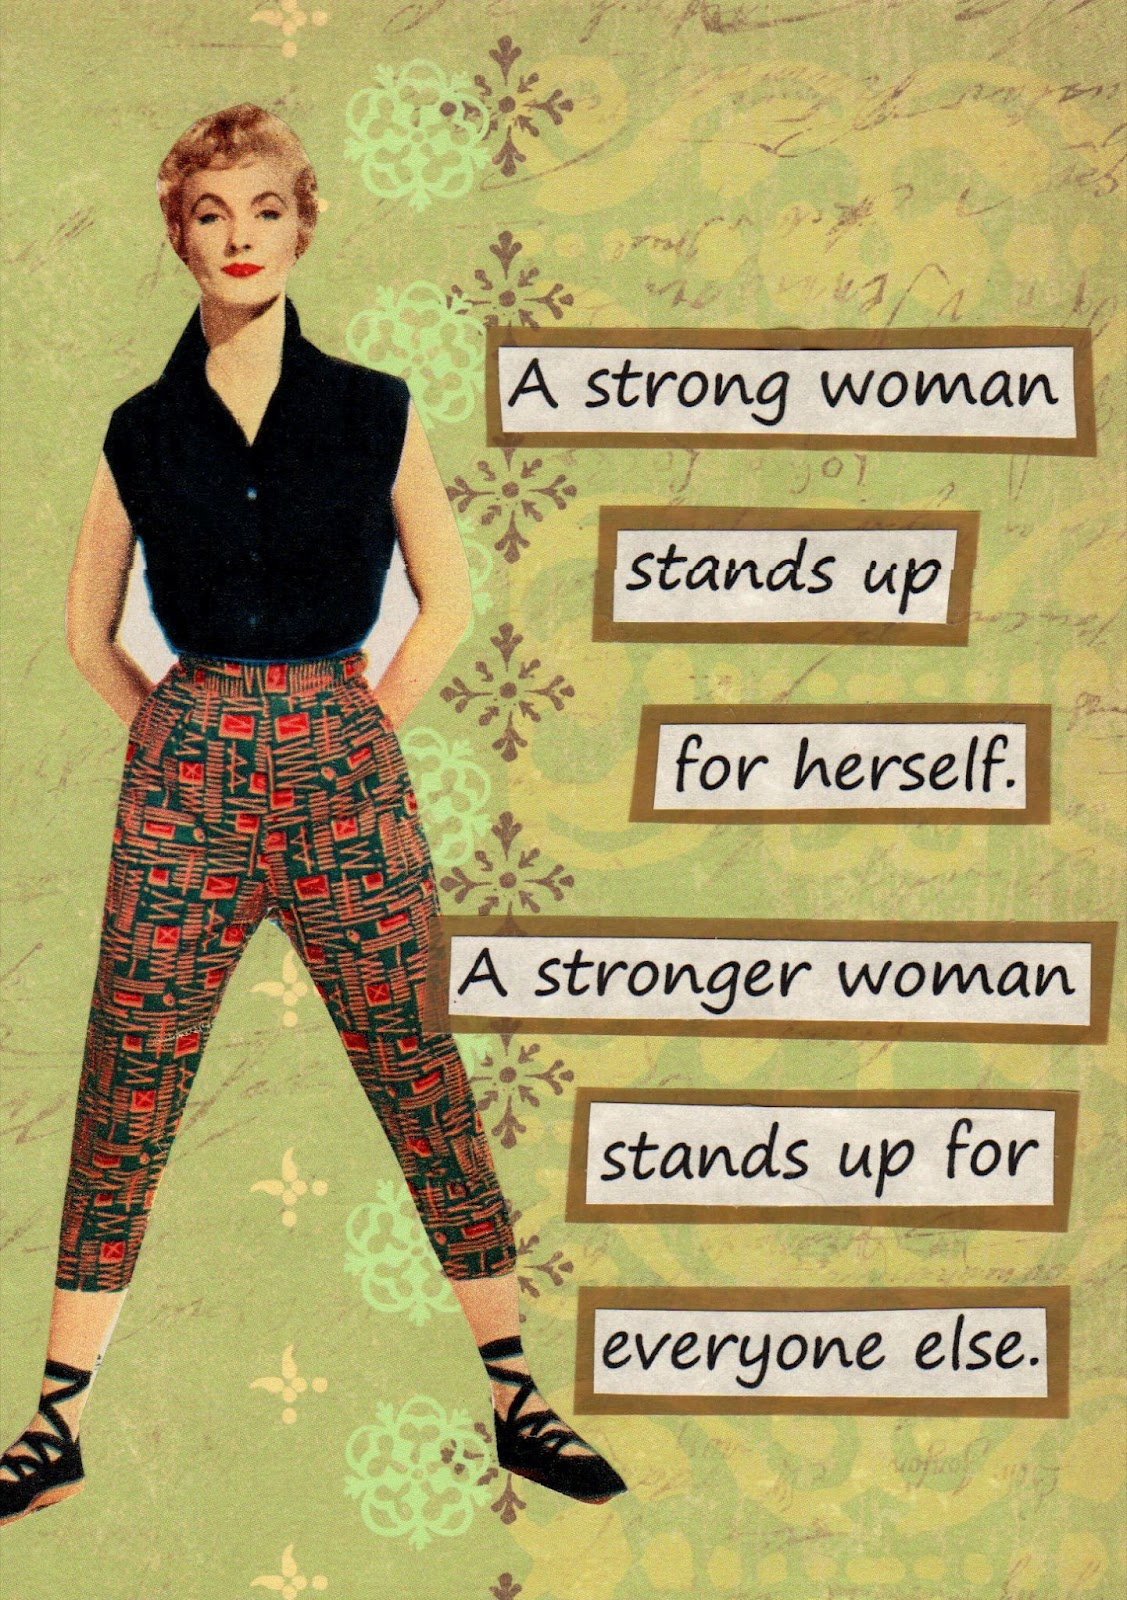 Strong woman images 12